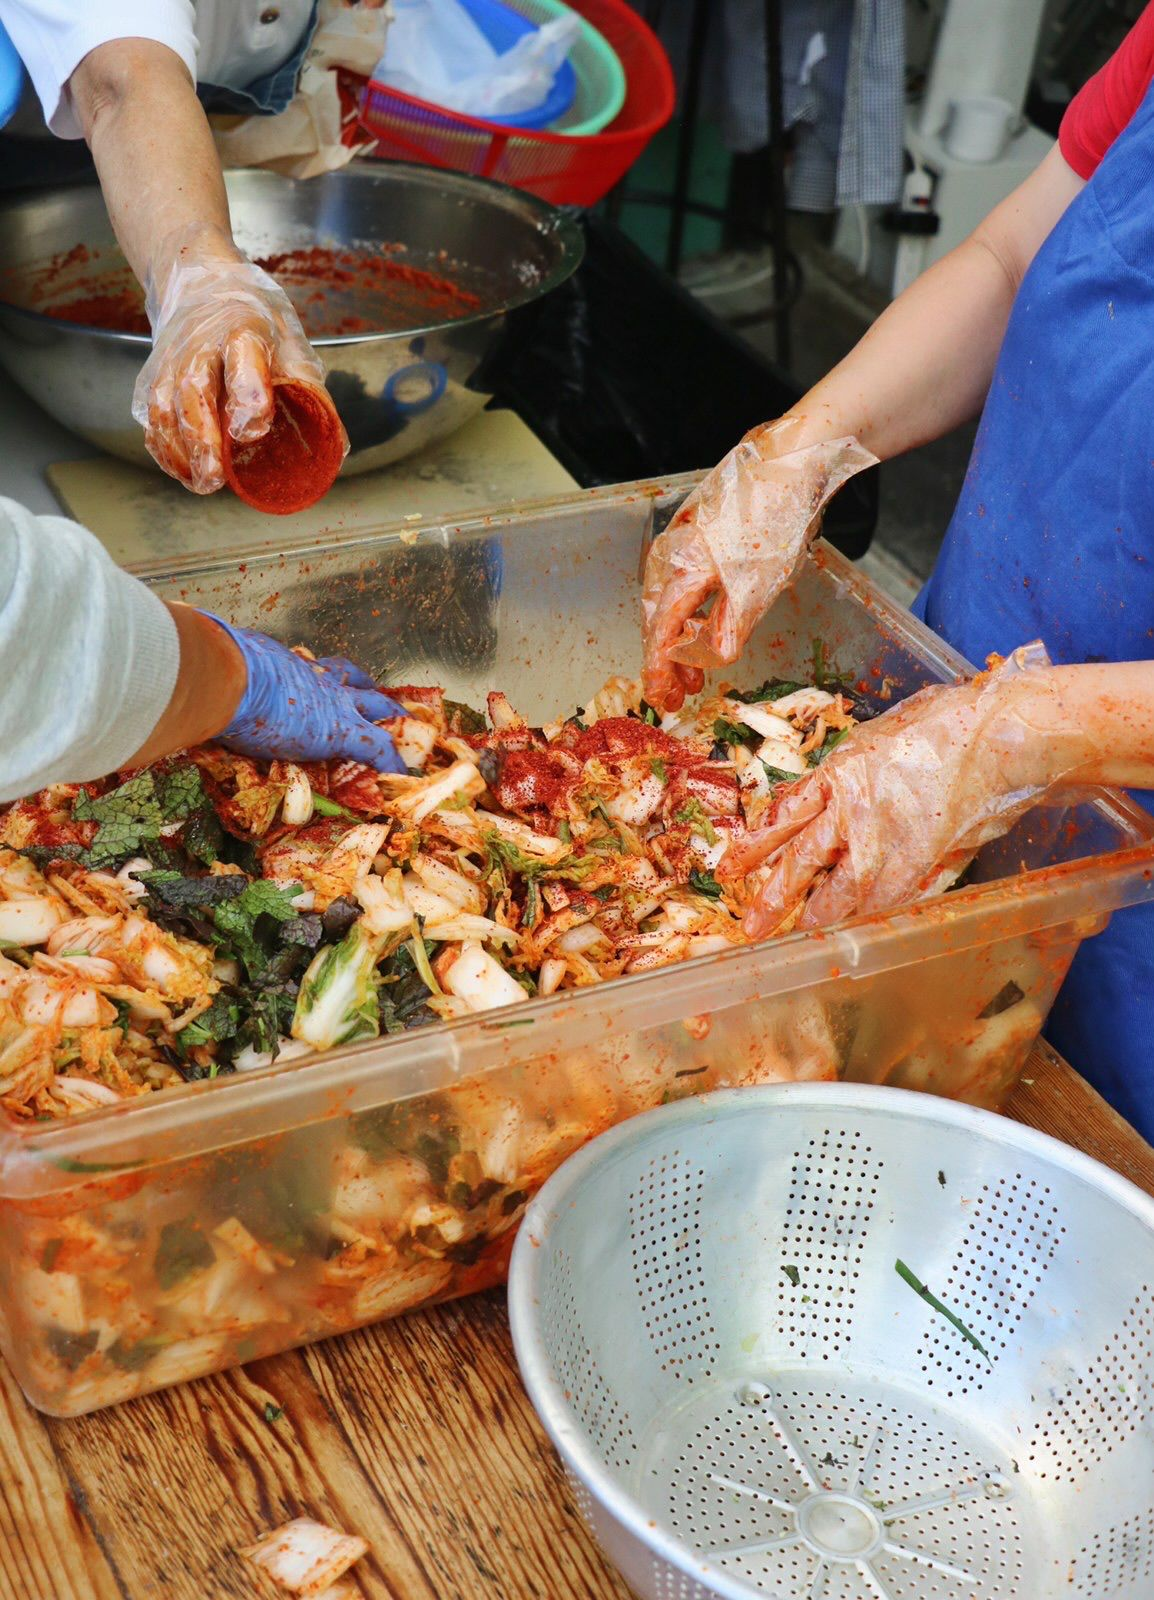 Gloved hands mix kimchi in a large plastic container